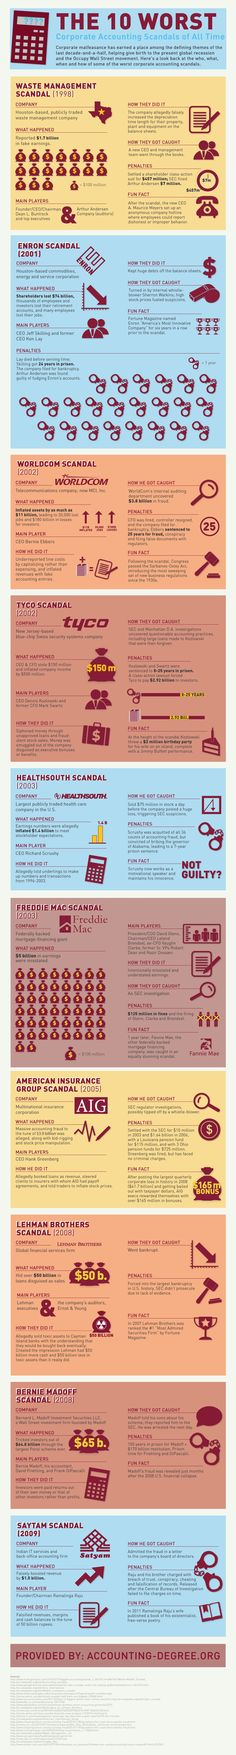 The worst corporate accounting scandals of all time #infographic